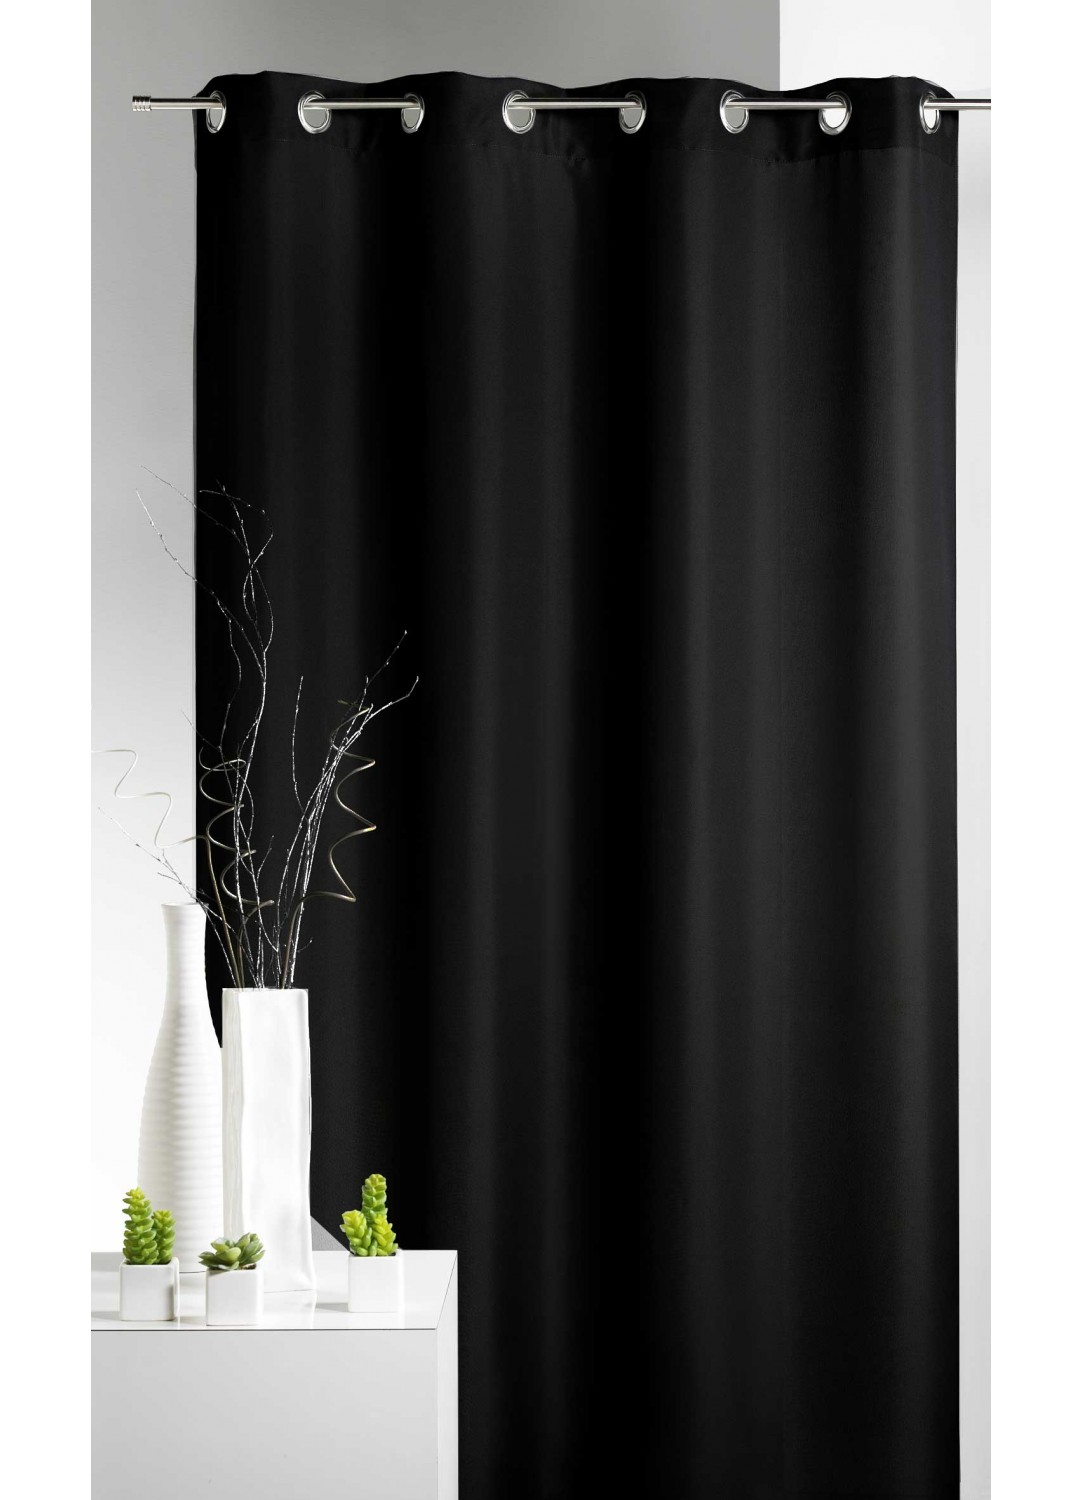 double rideaux occultant ikea ikea rideaux occultants. Black Bedroom Furniture Sets. Home Design Ideas